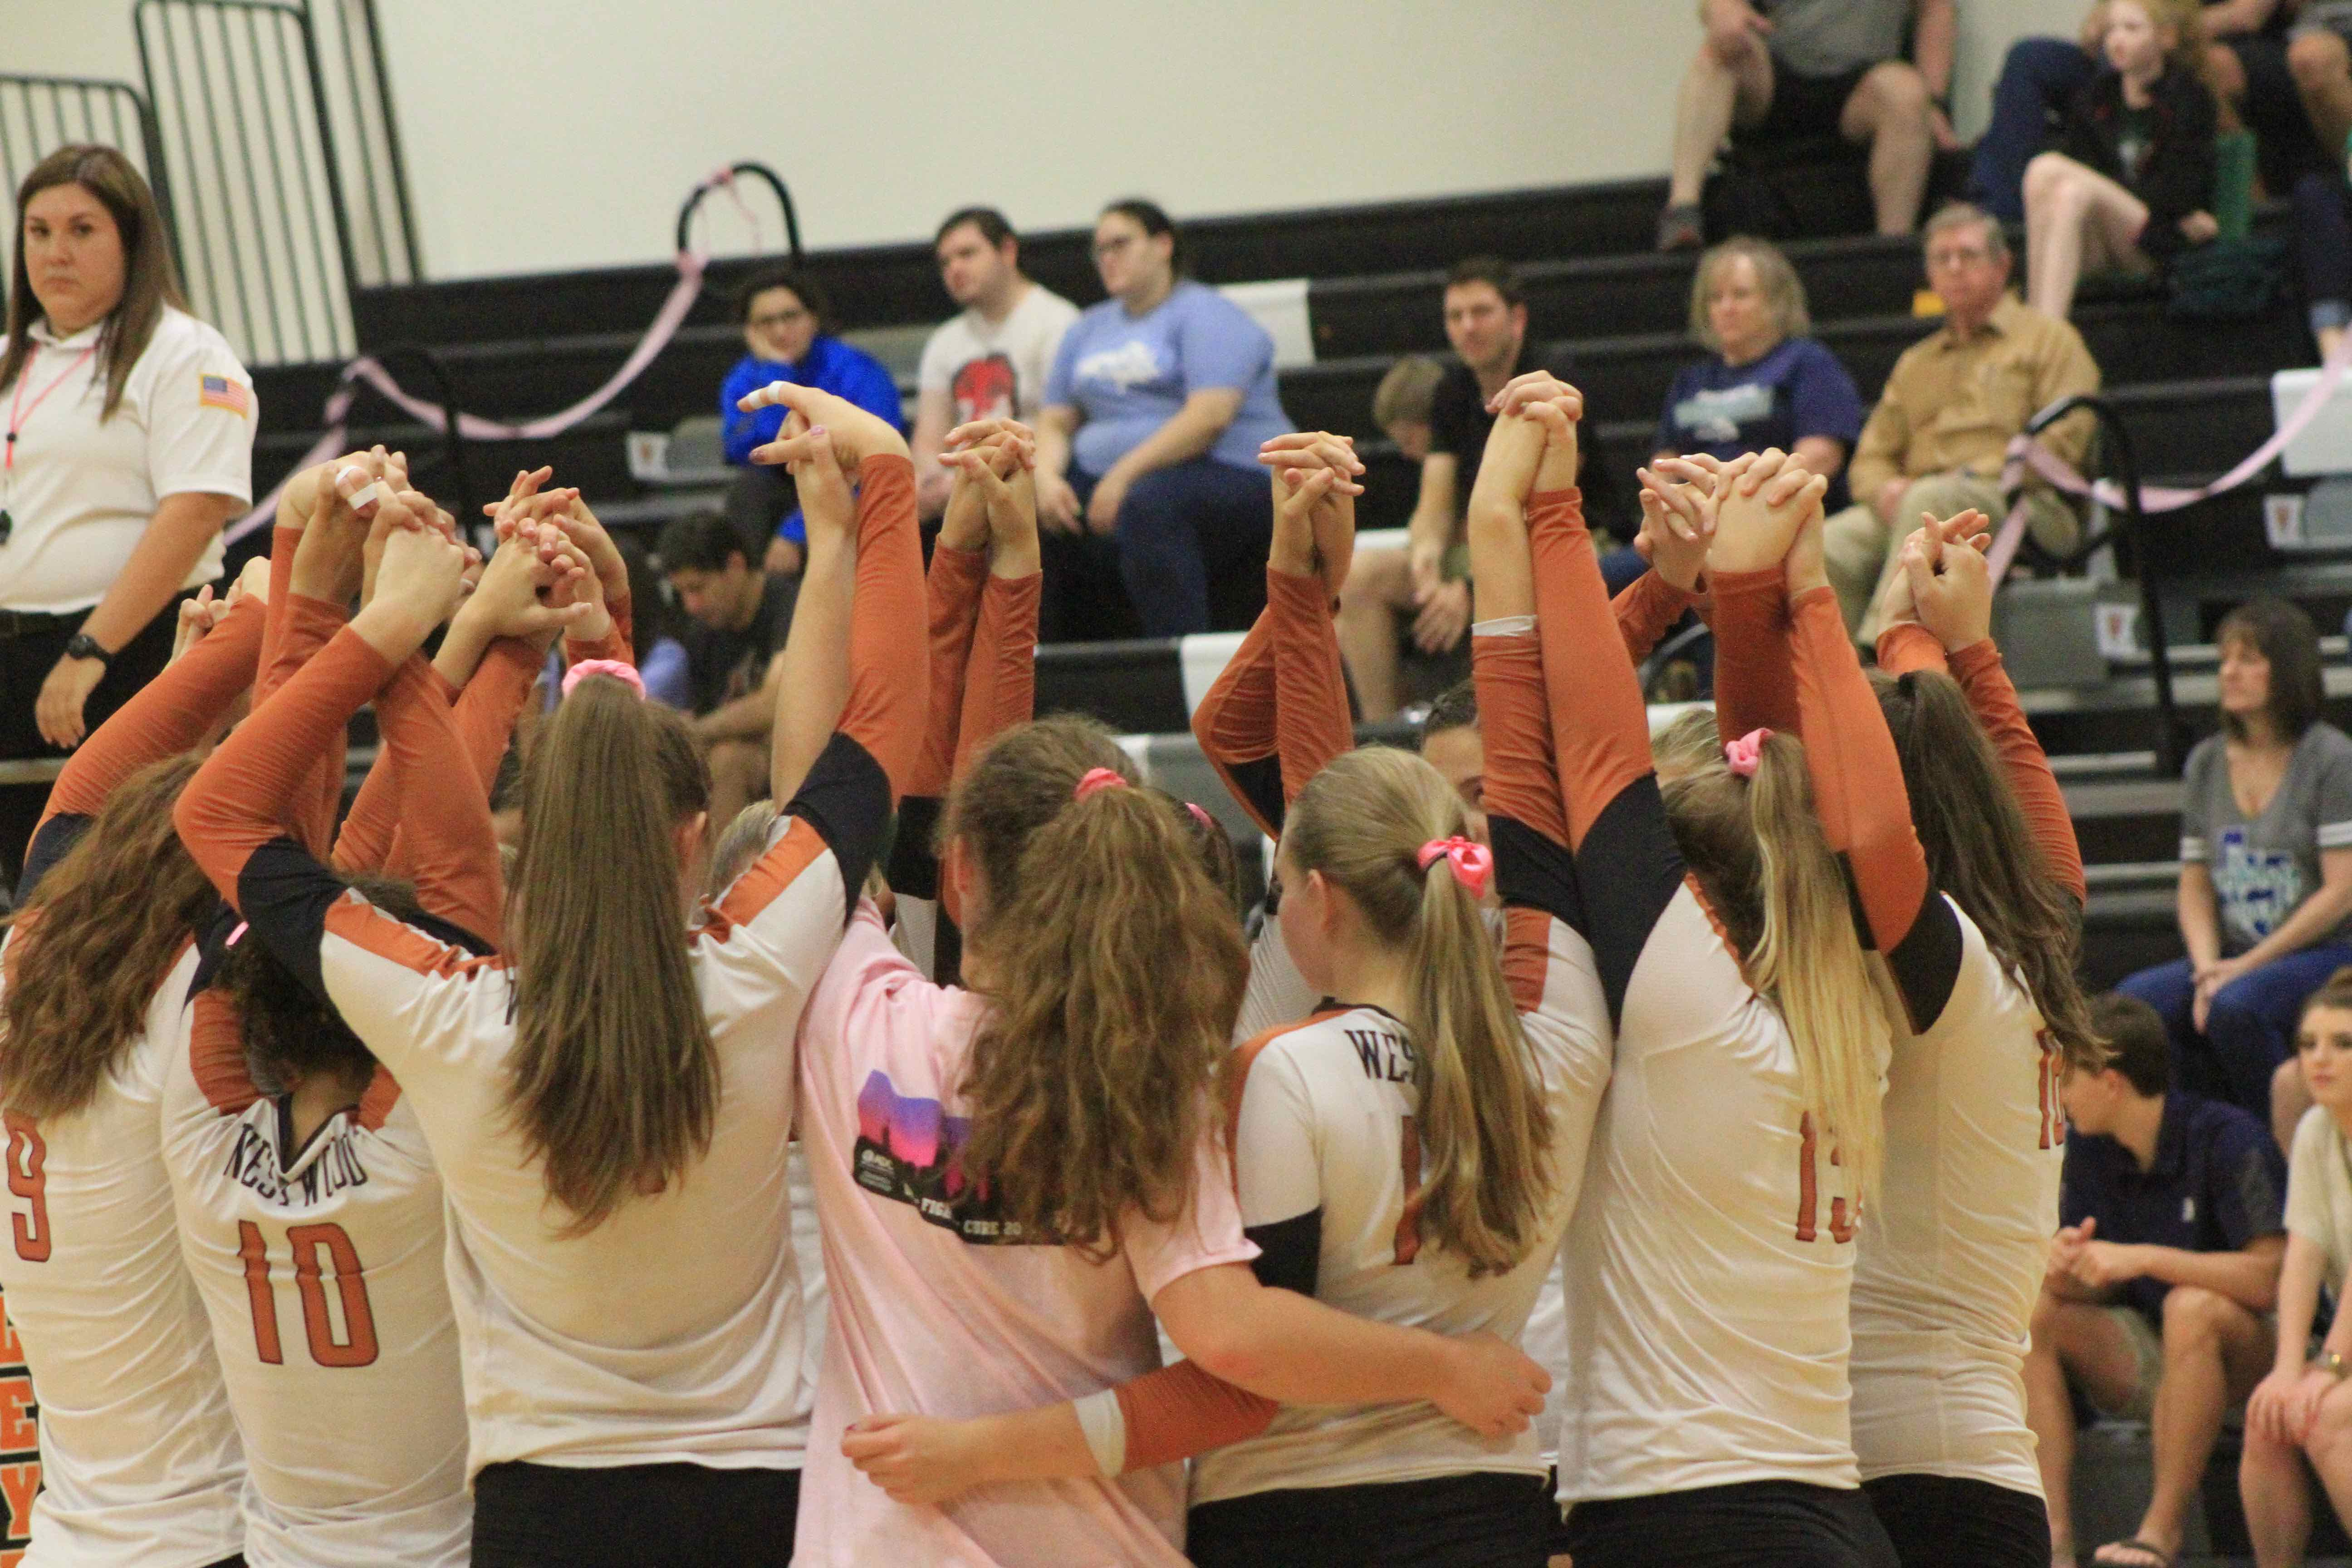 Varsity+Volleyball+Sweeps+McNeil+In+Annual+Breast+Cancer+Awareness+Game